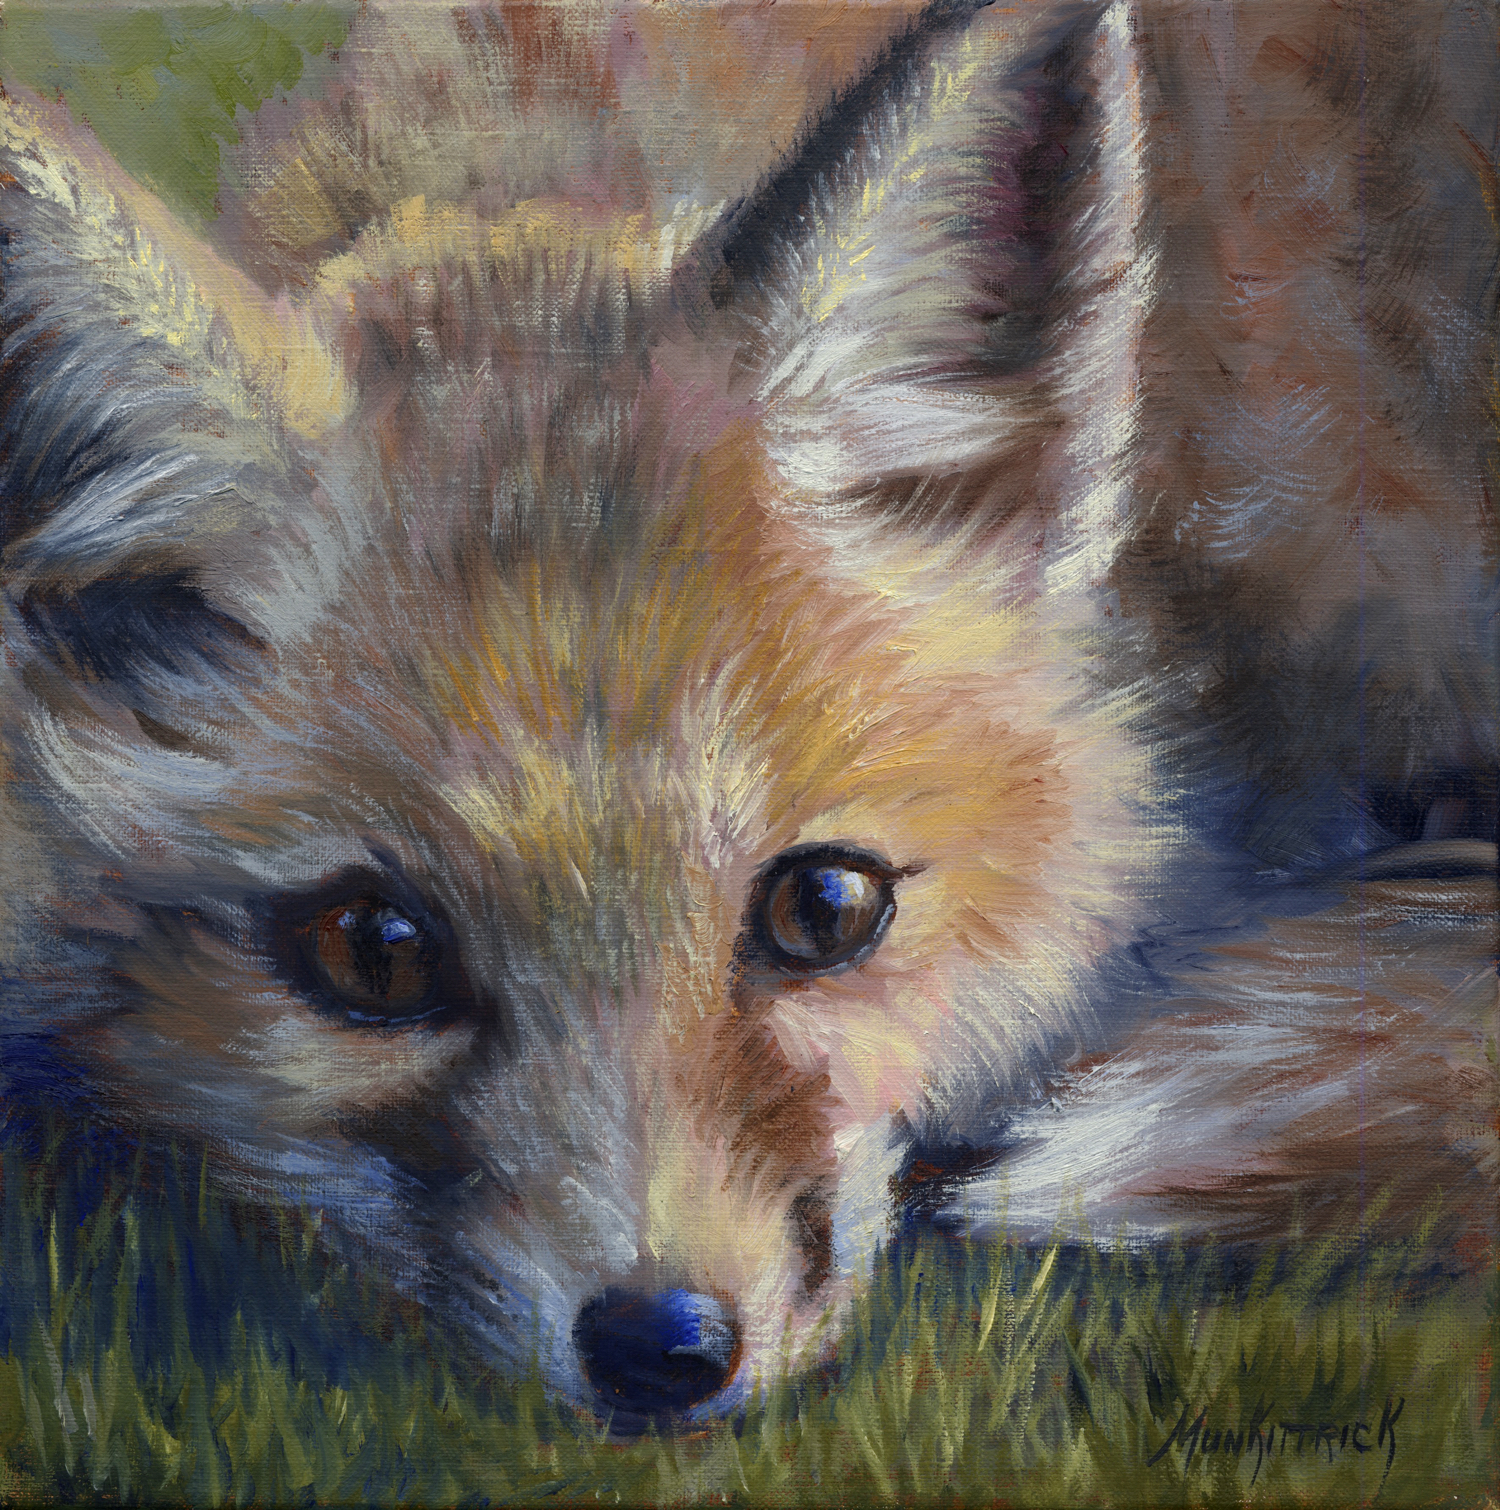 Here's Lookin' at you, Kit! 12 x 12 Oil on linen $495